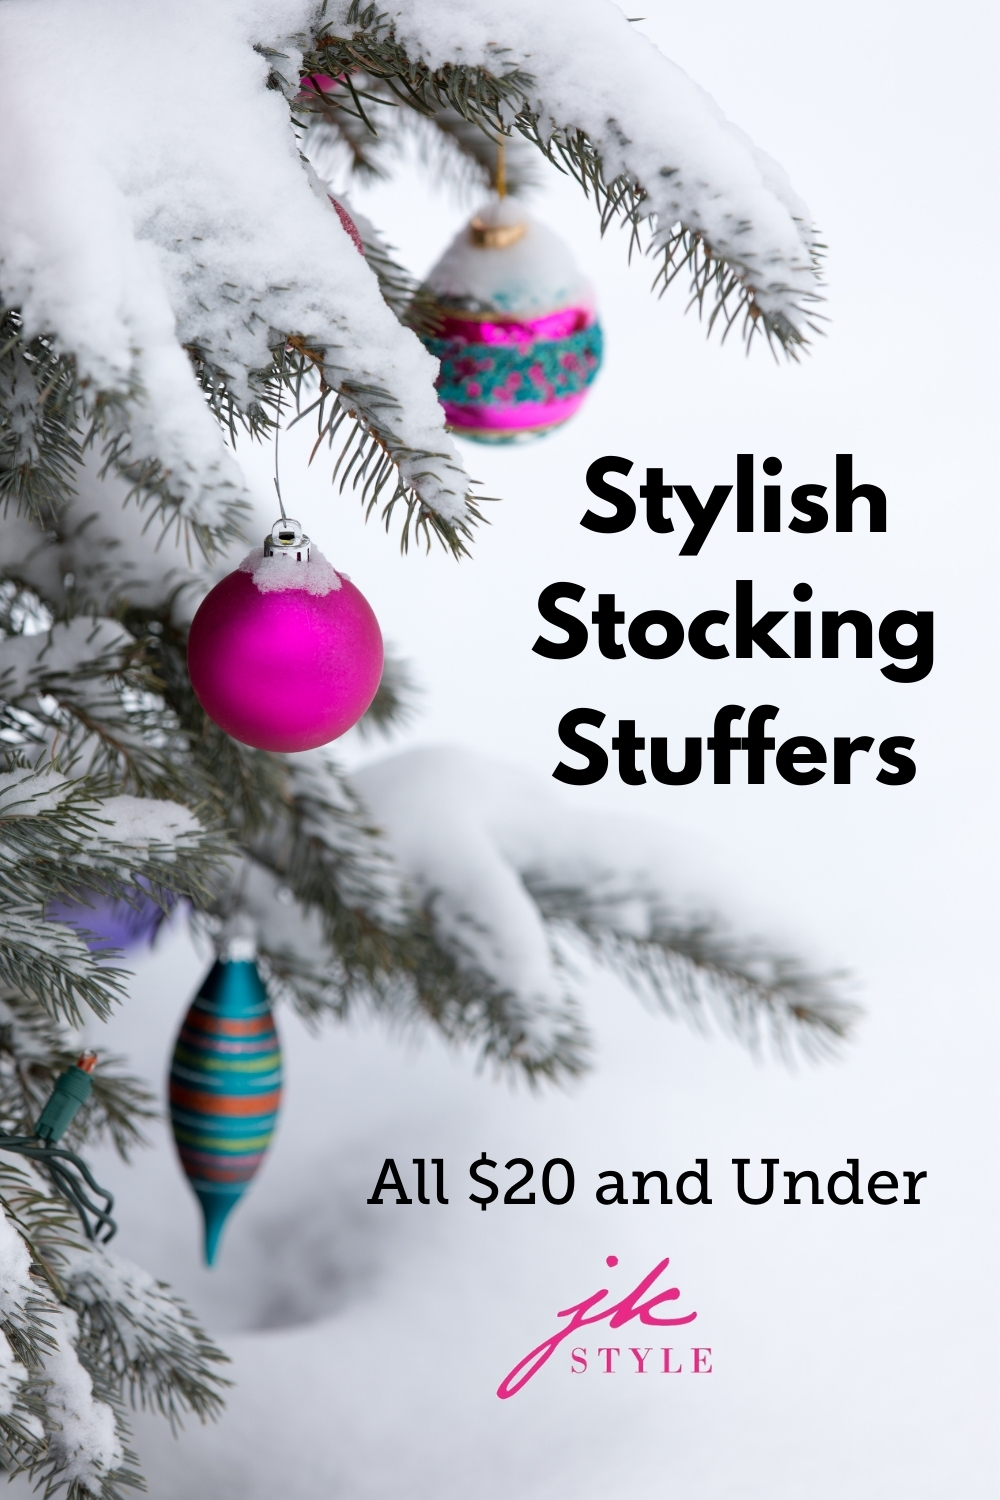 stylish stocking stuffers 2020 - JK Style